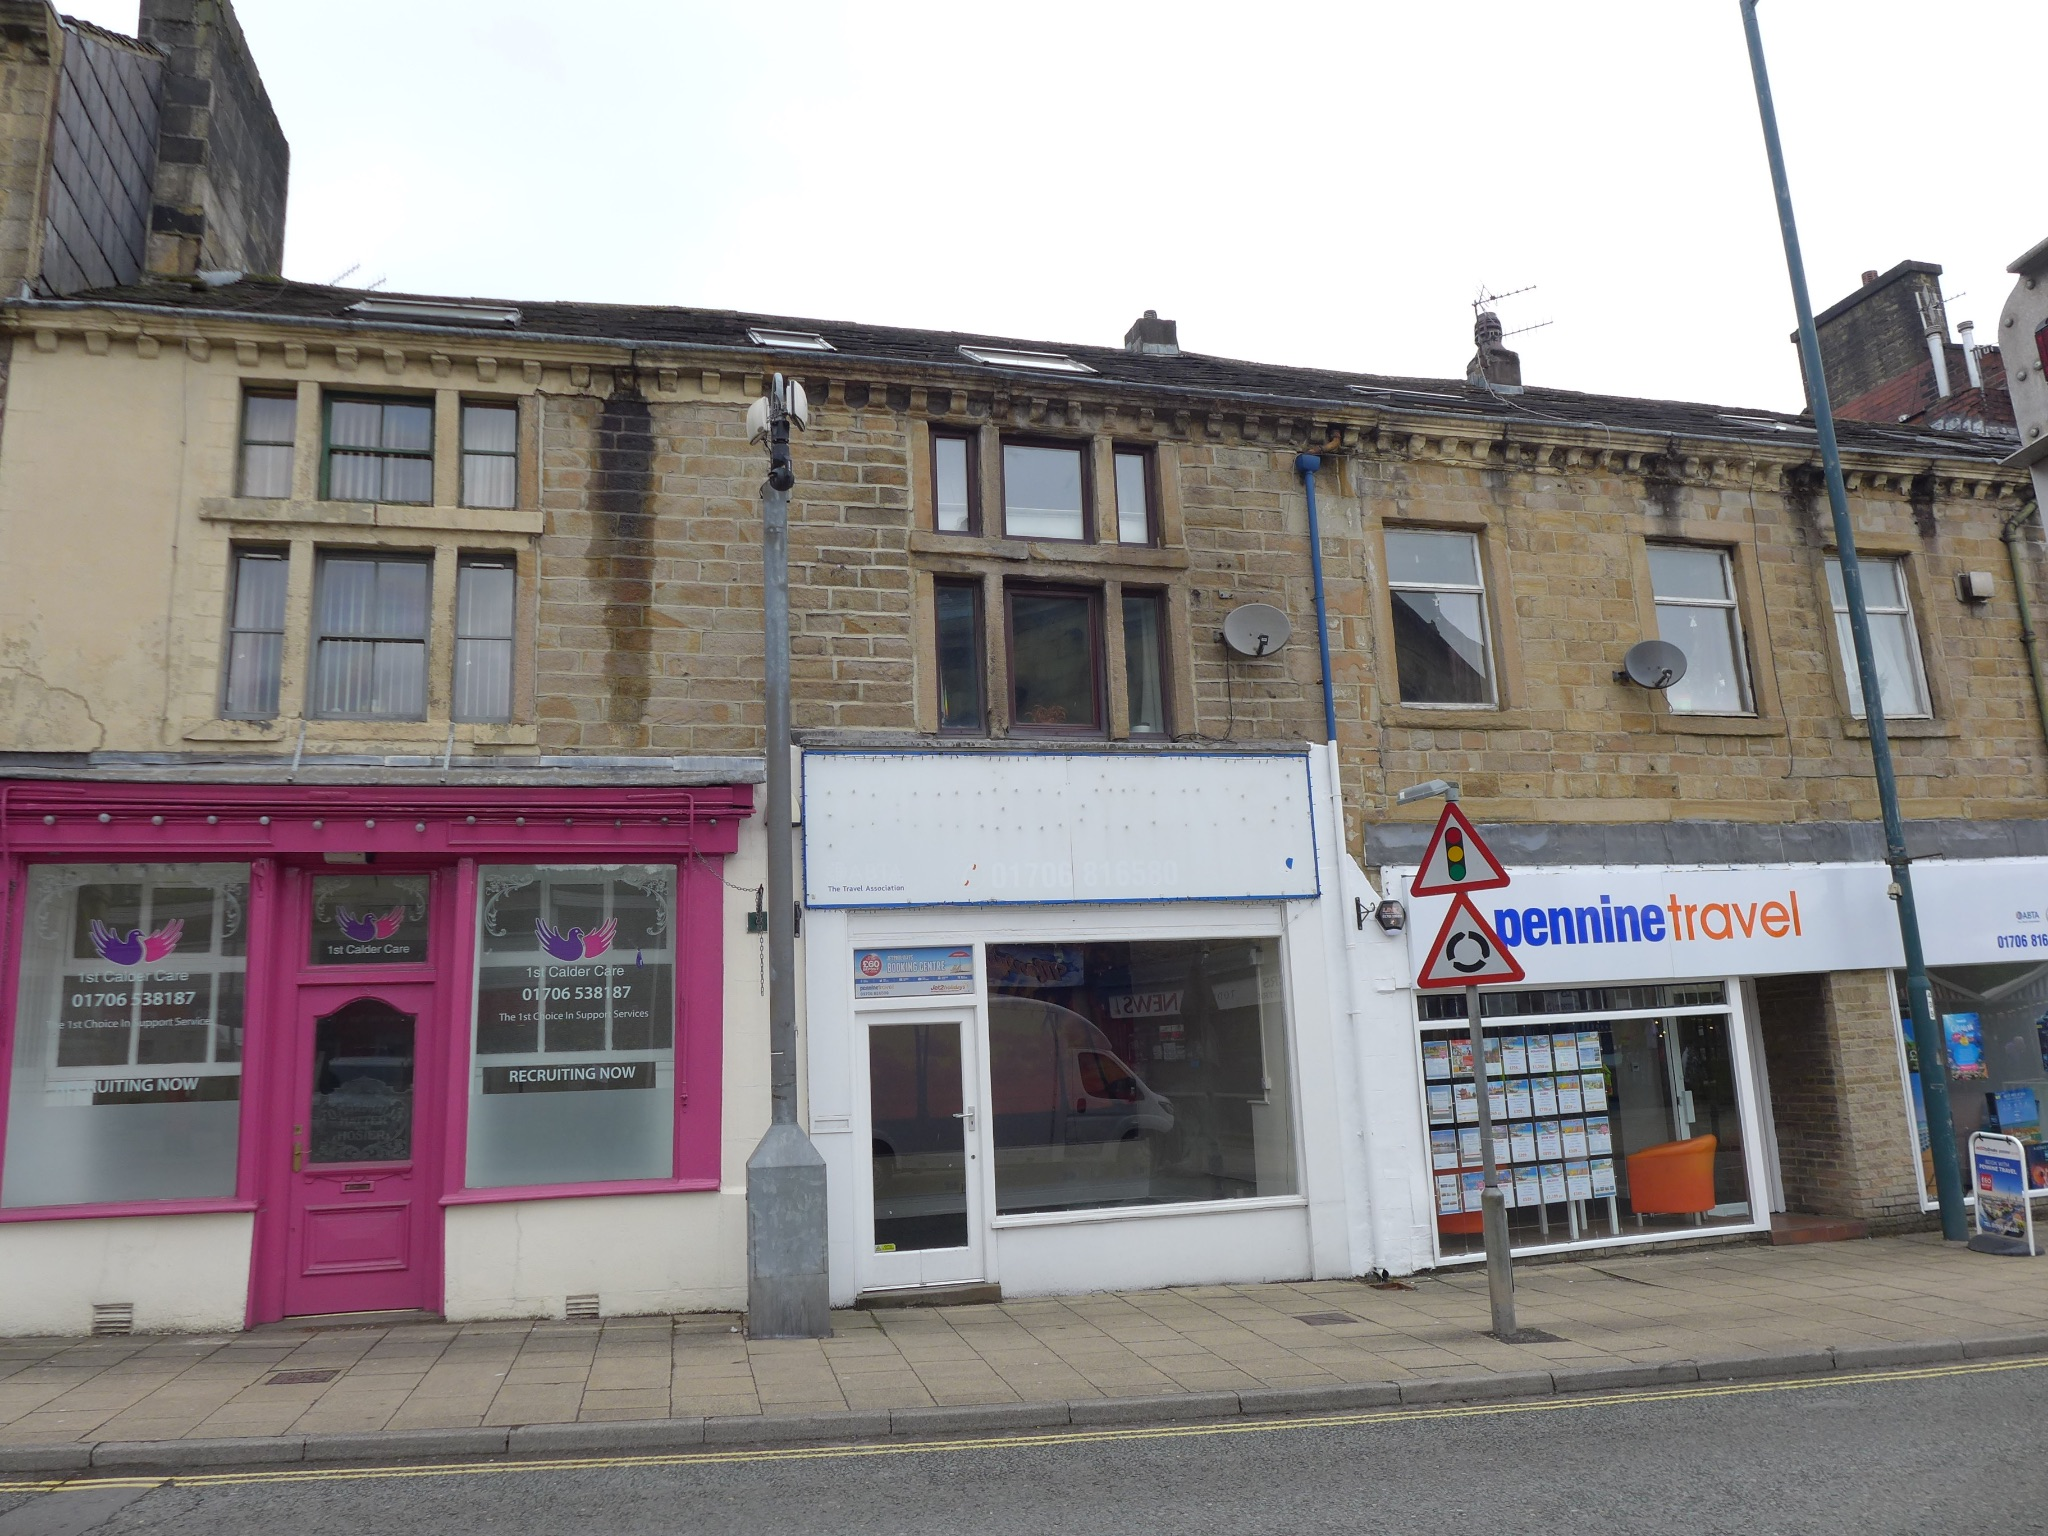 Empty Retail Premises For Sale in Calderdale - Photograph 1.